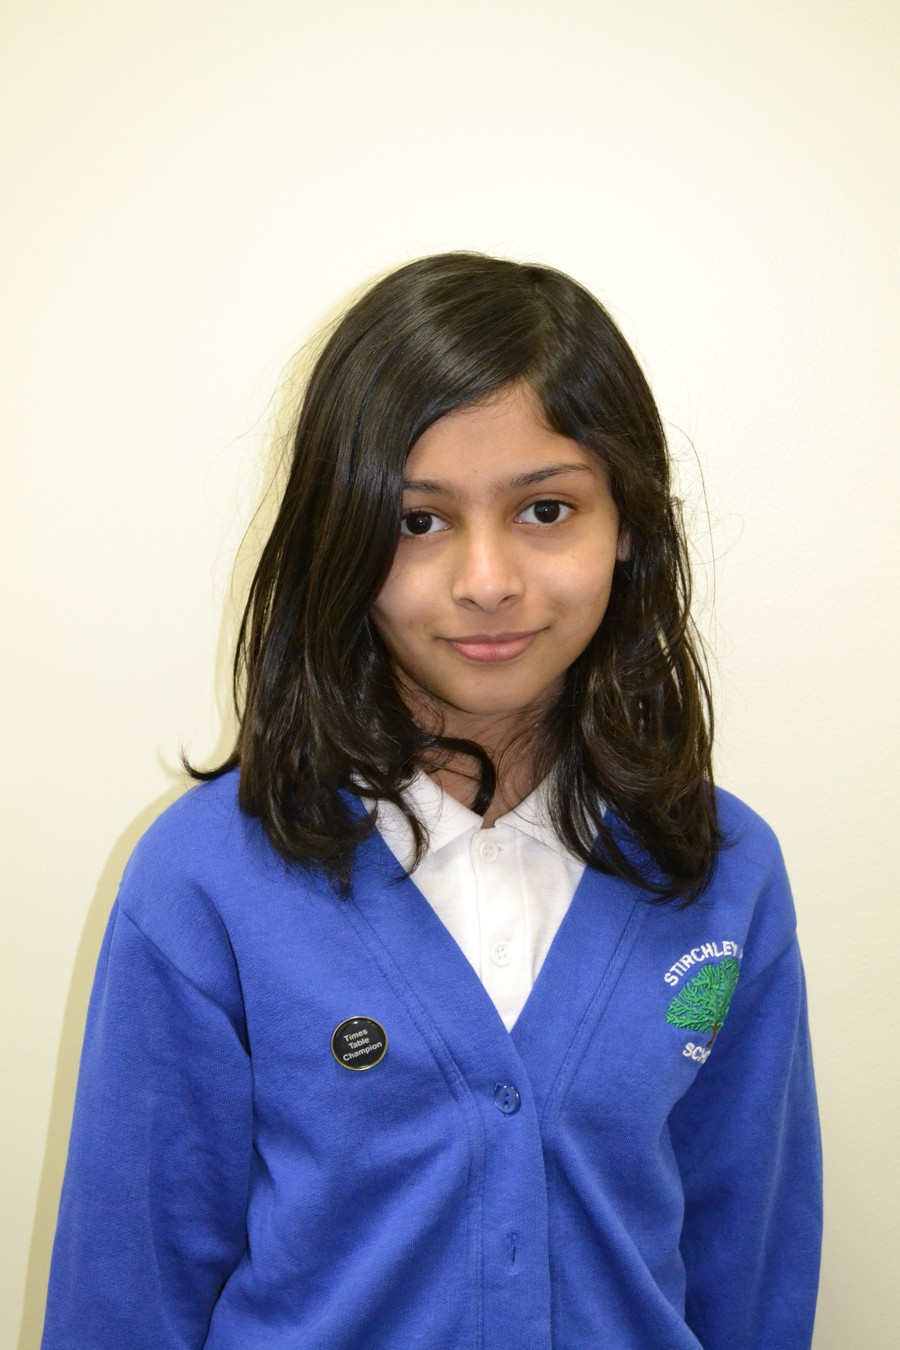 Well done Hasfa!